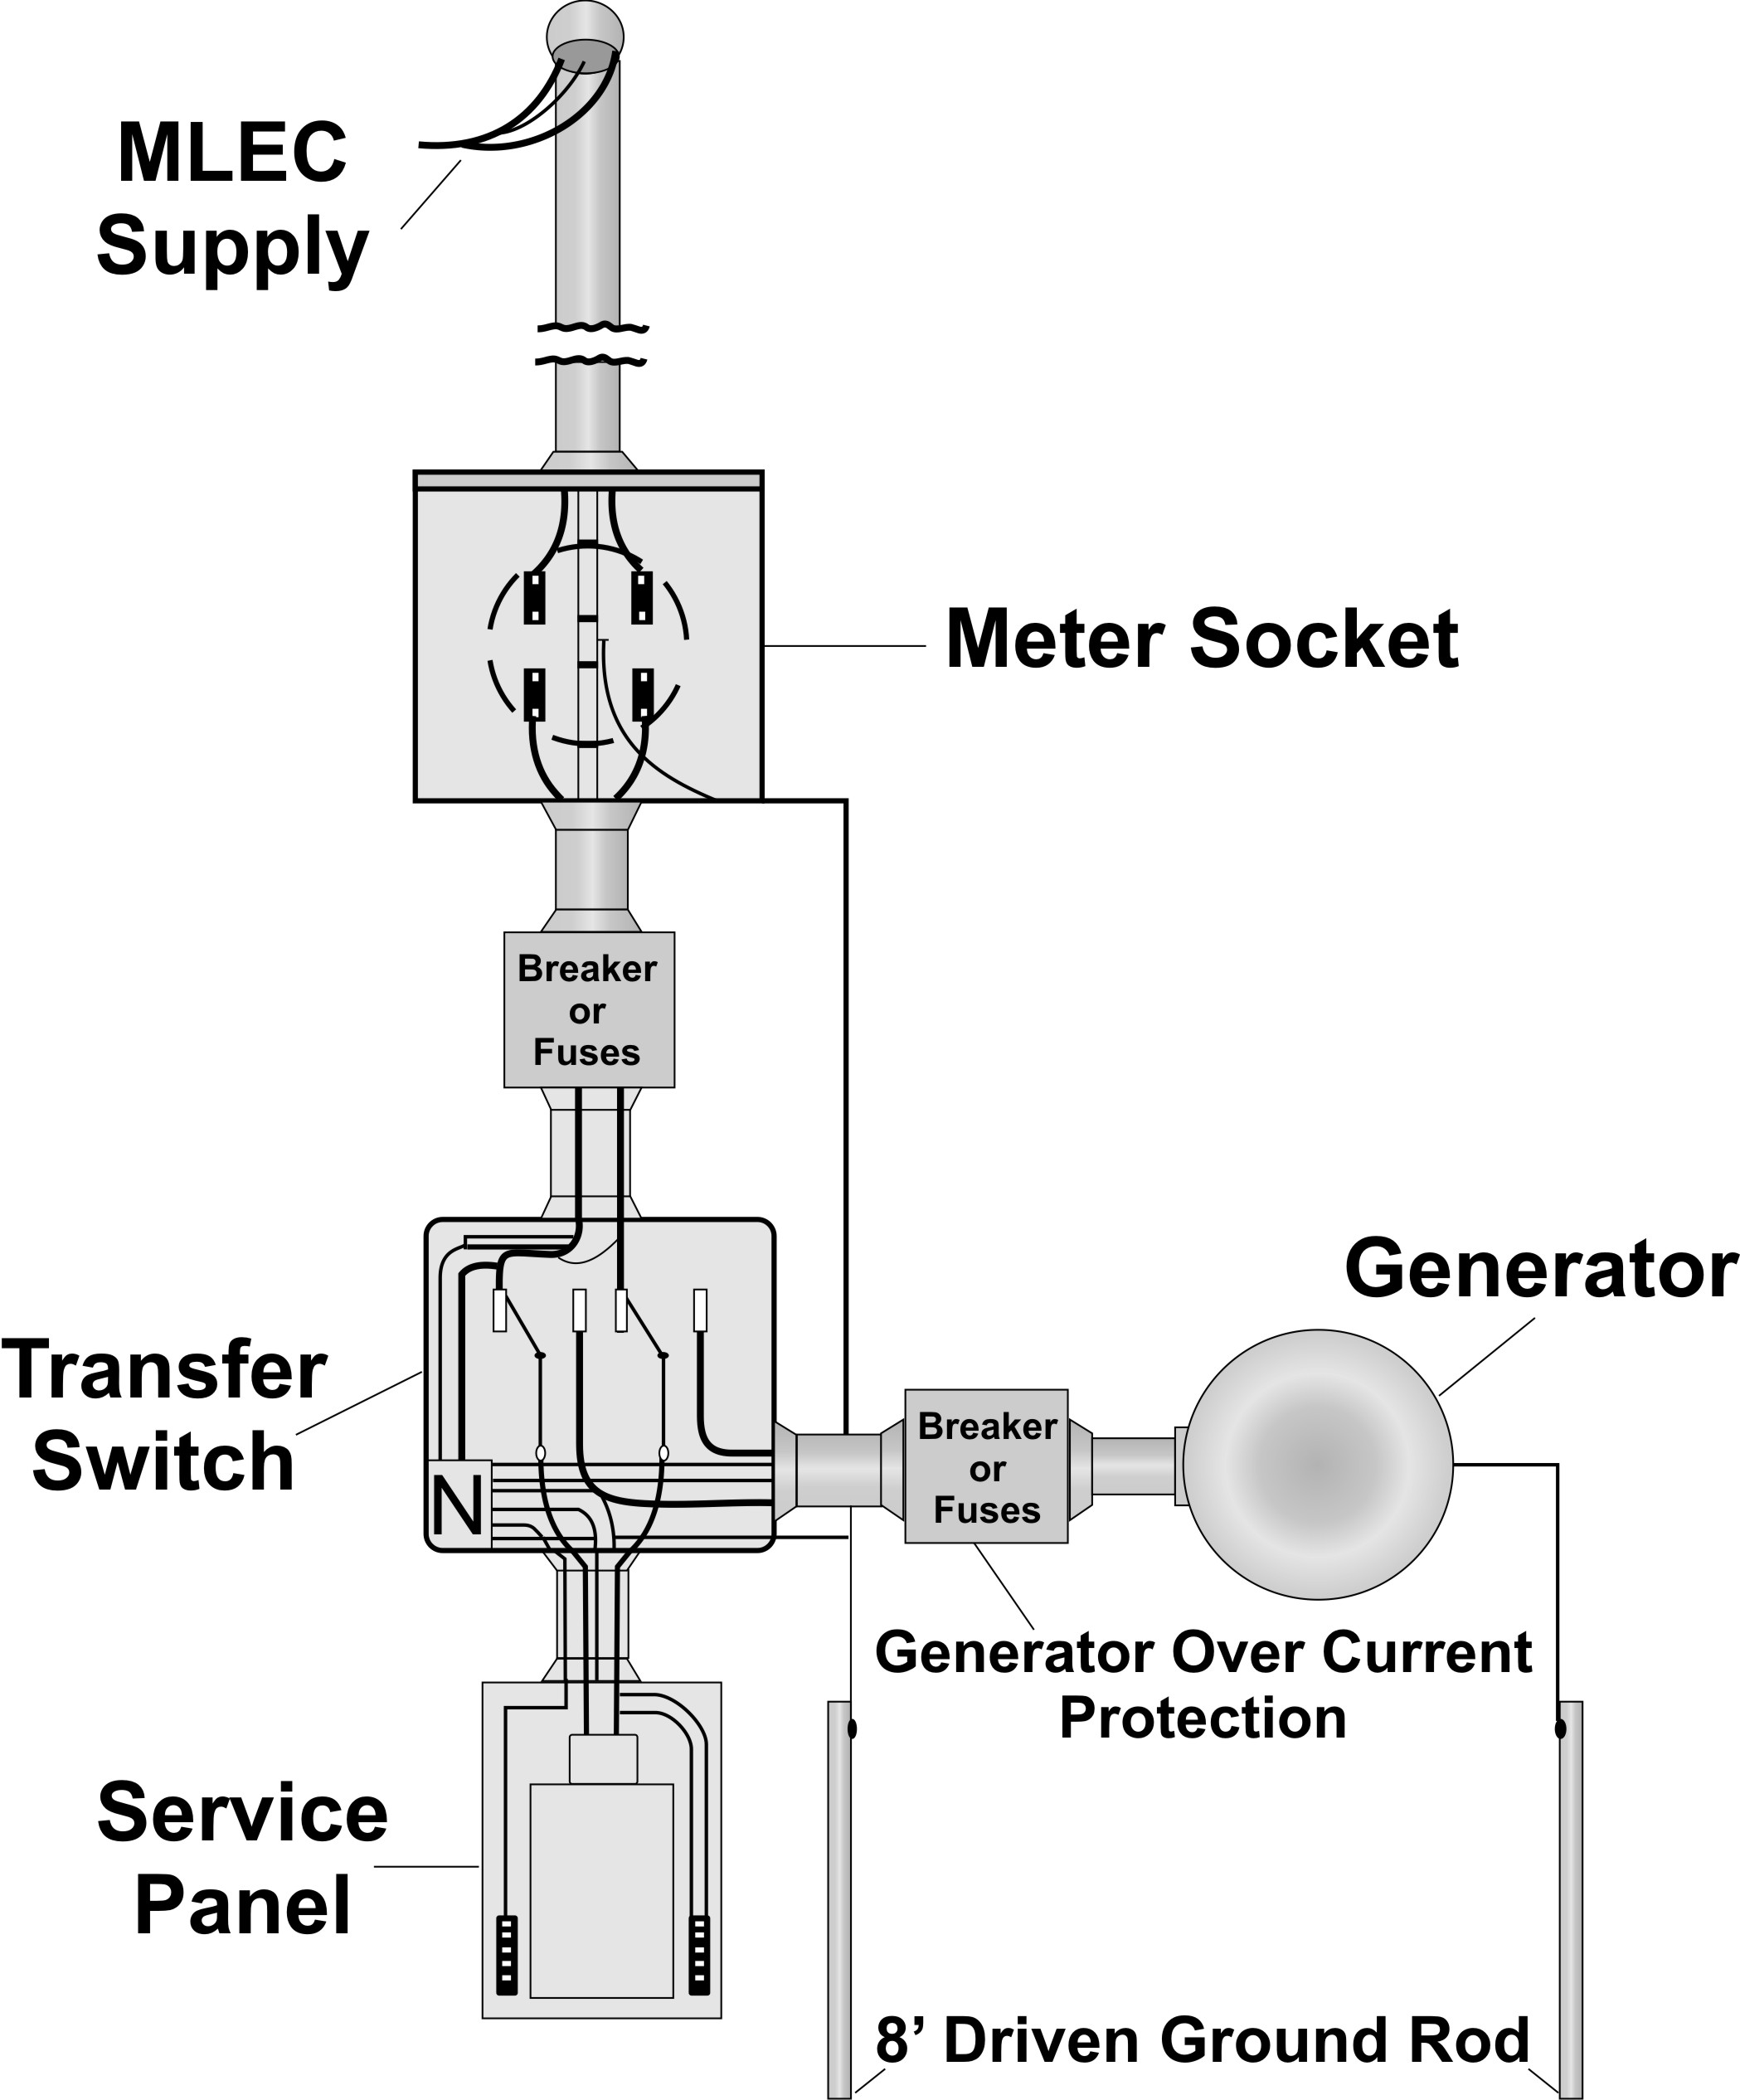 electrical service entrance panel wiring diagram generator safety meriwether lewis electric cooperative  meriwether lewis electric cooperative